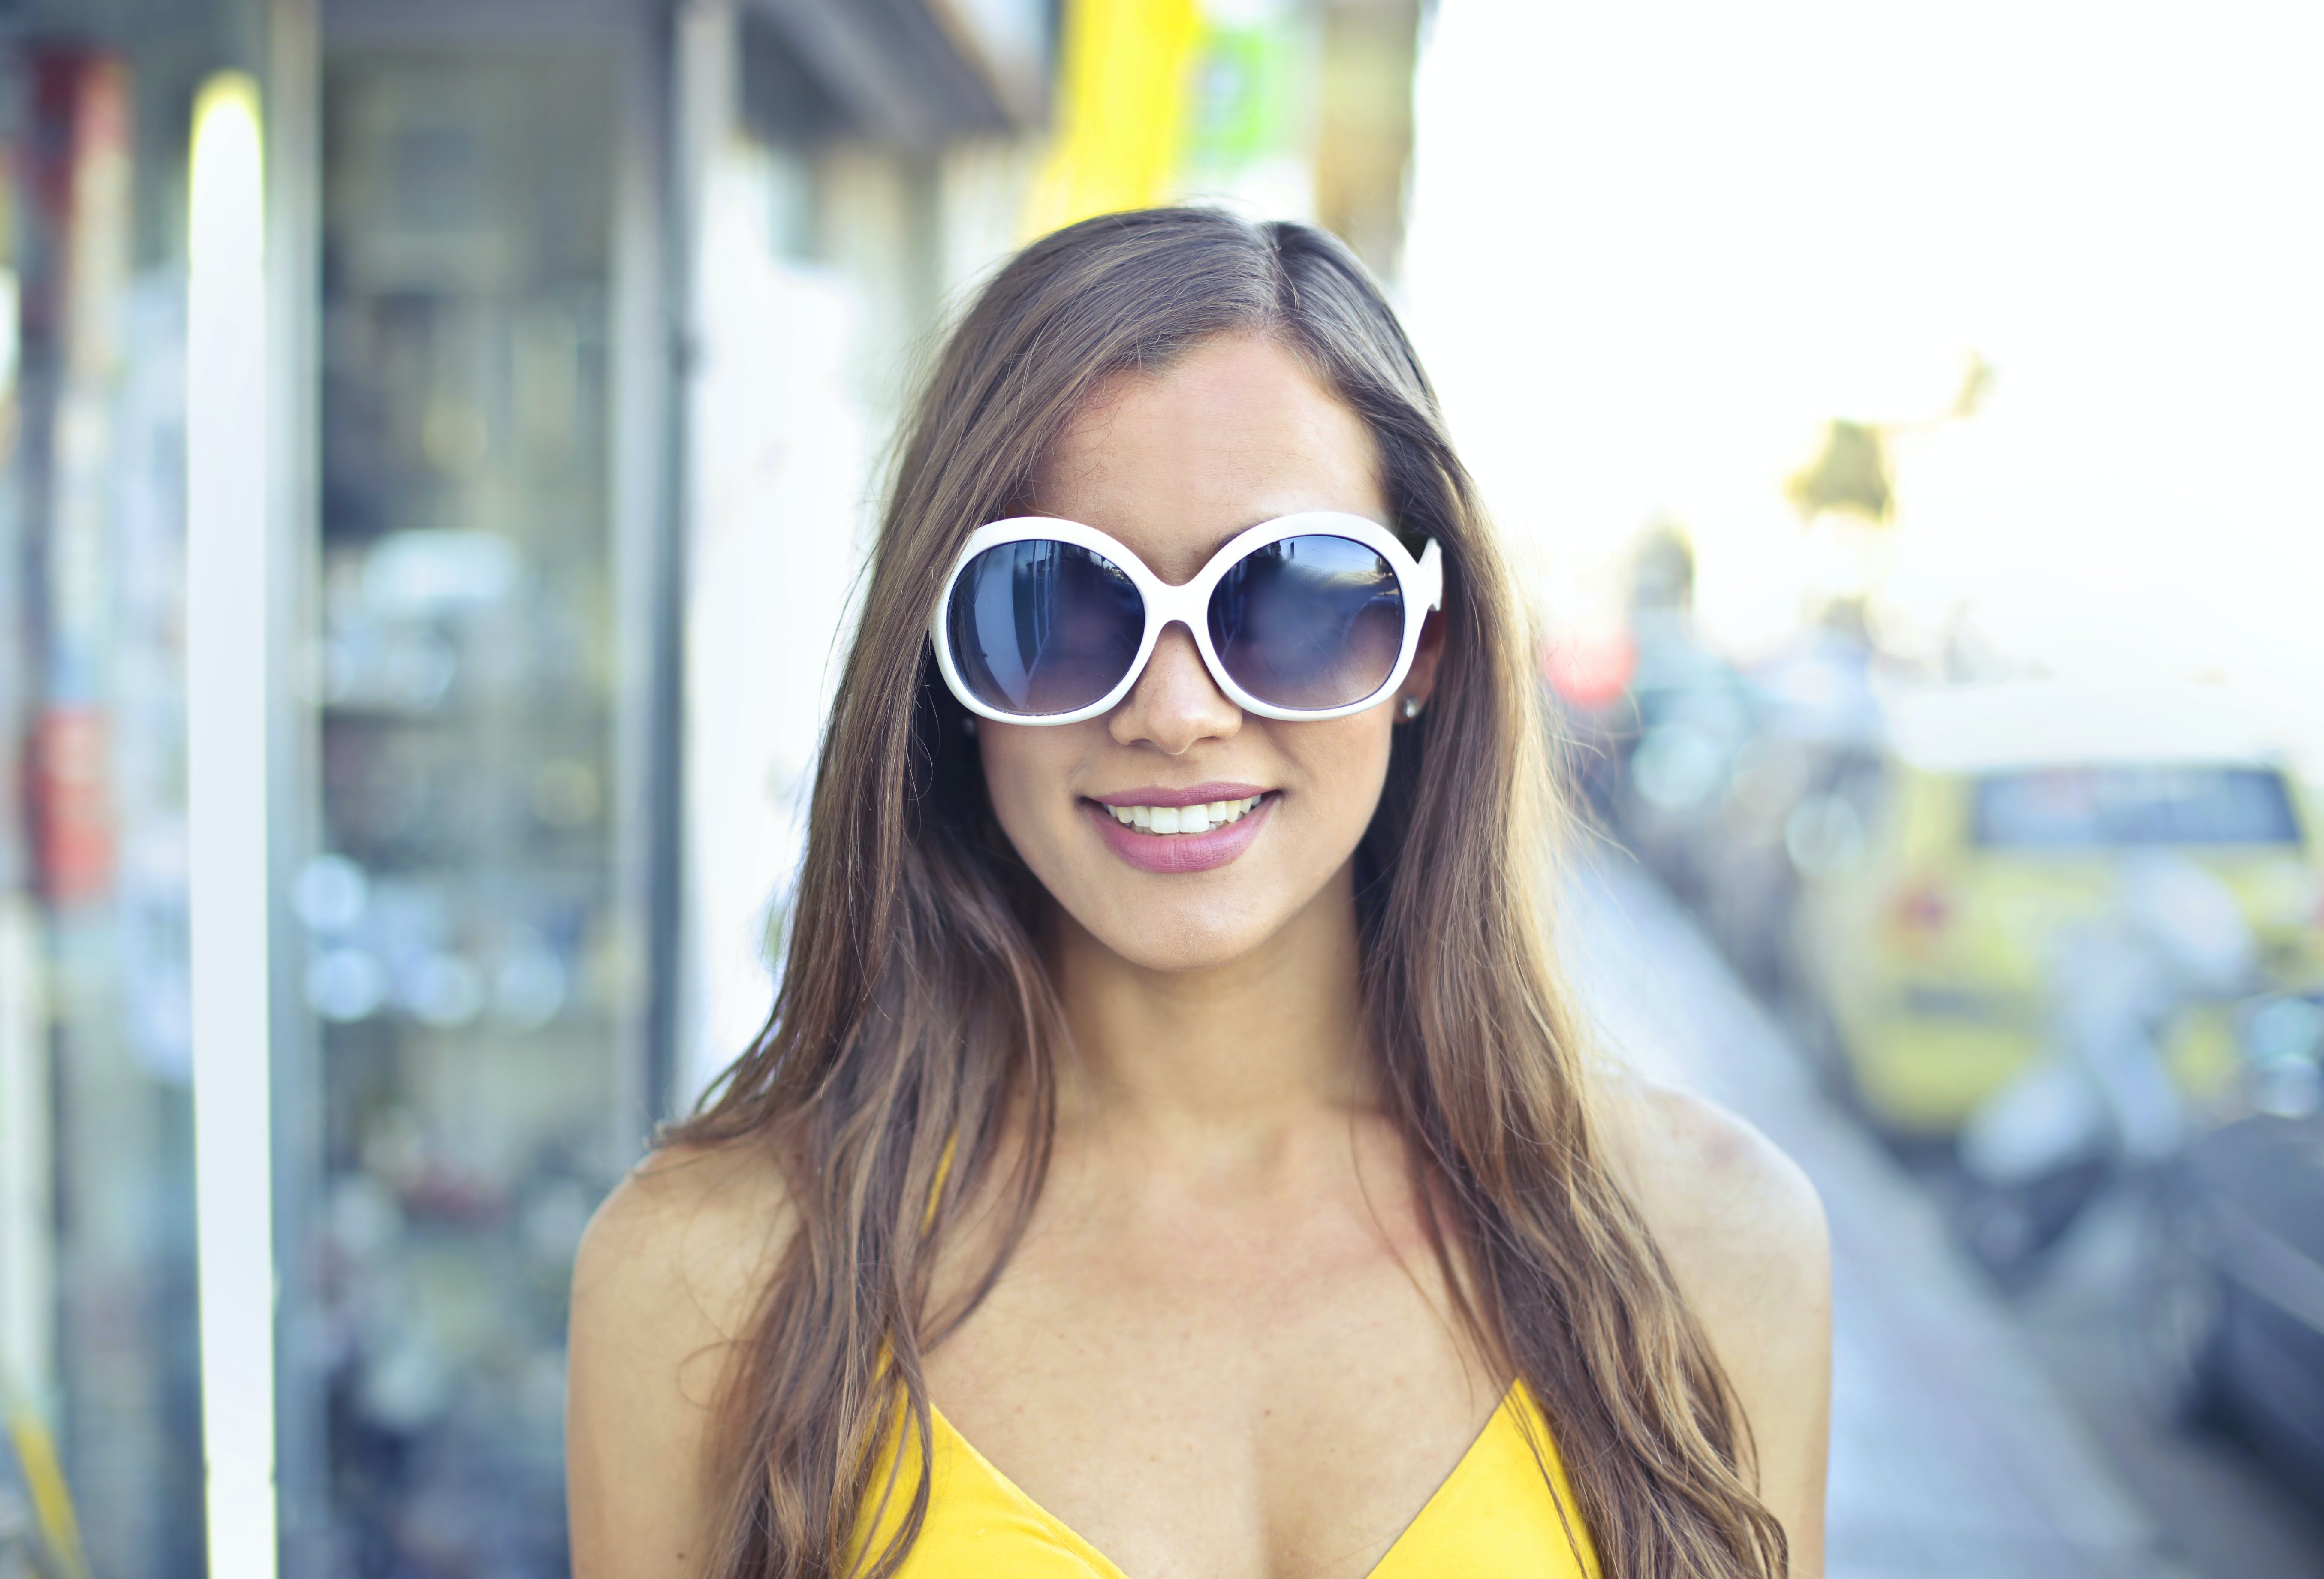 Woman Wearing Yellow Spaghetti Strap Top and Round Sunglasses